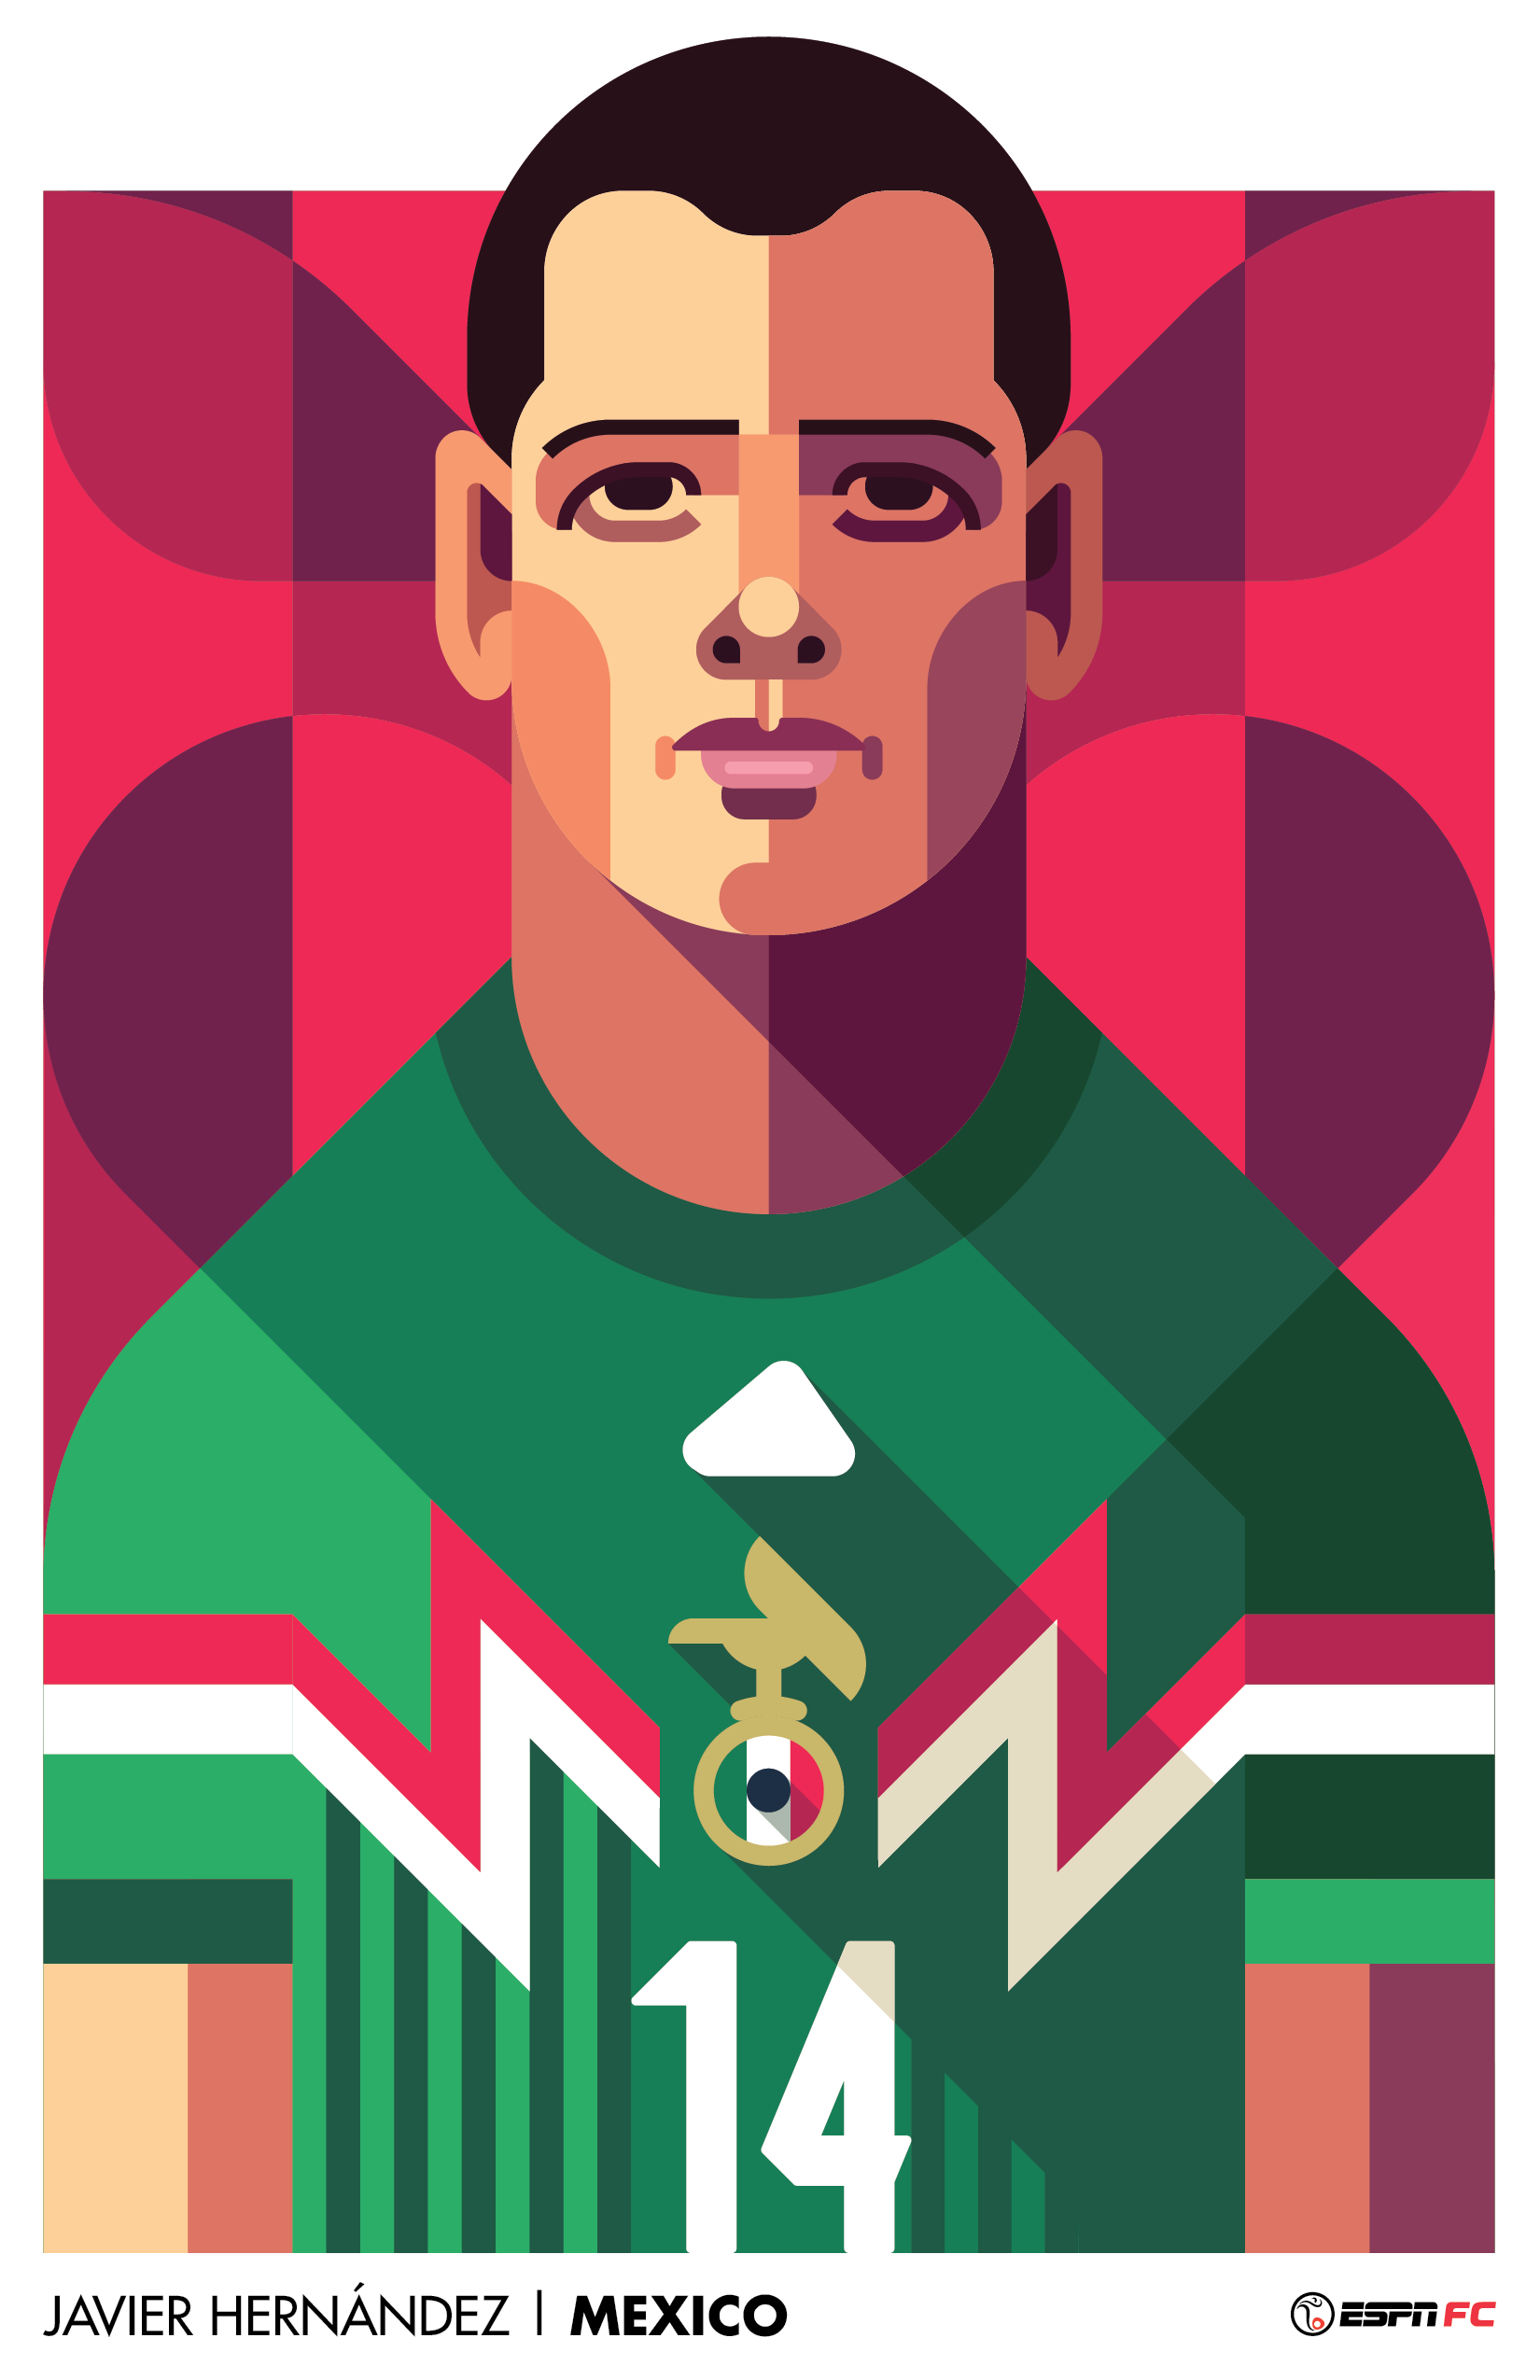 Javier Hernandez | Mexico for ESPN